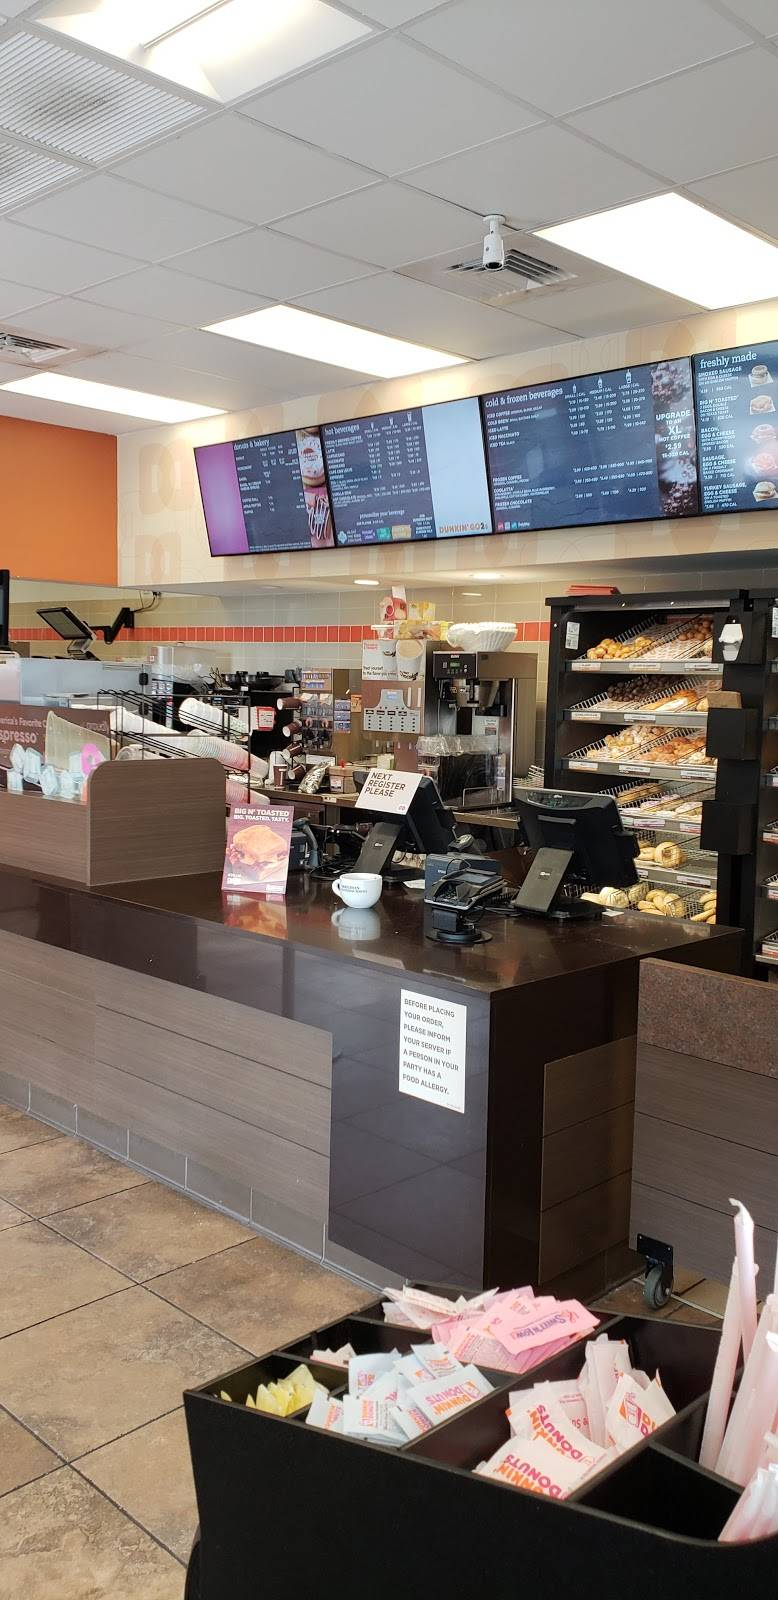 Dunkin Donuts | cafe | 2698 Roosevelt Blvd Speedway, Clearwater, FL 33760, USA | 7275350265 OR +1 727-535-0265